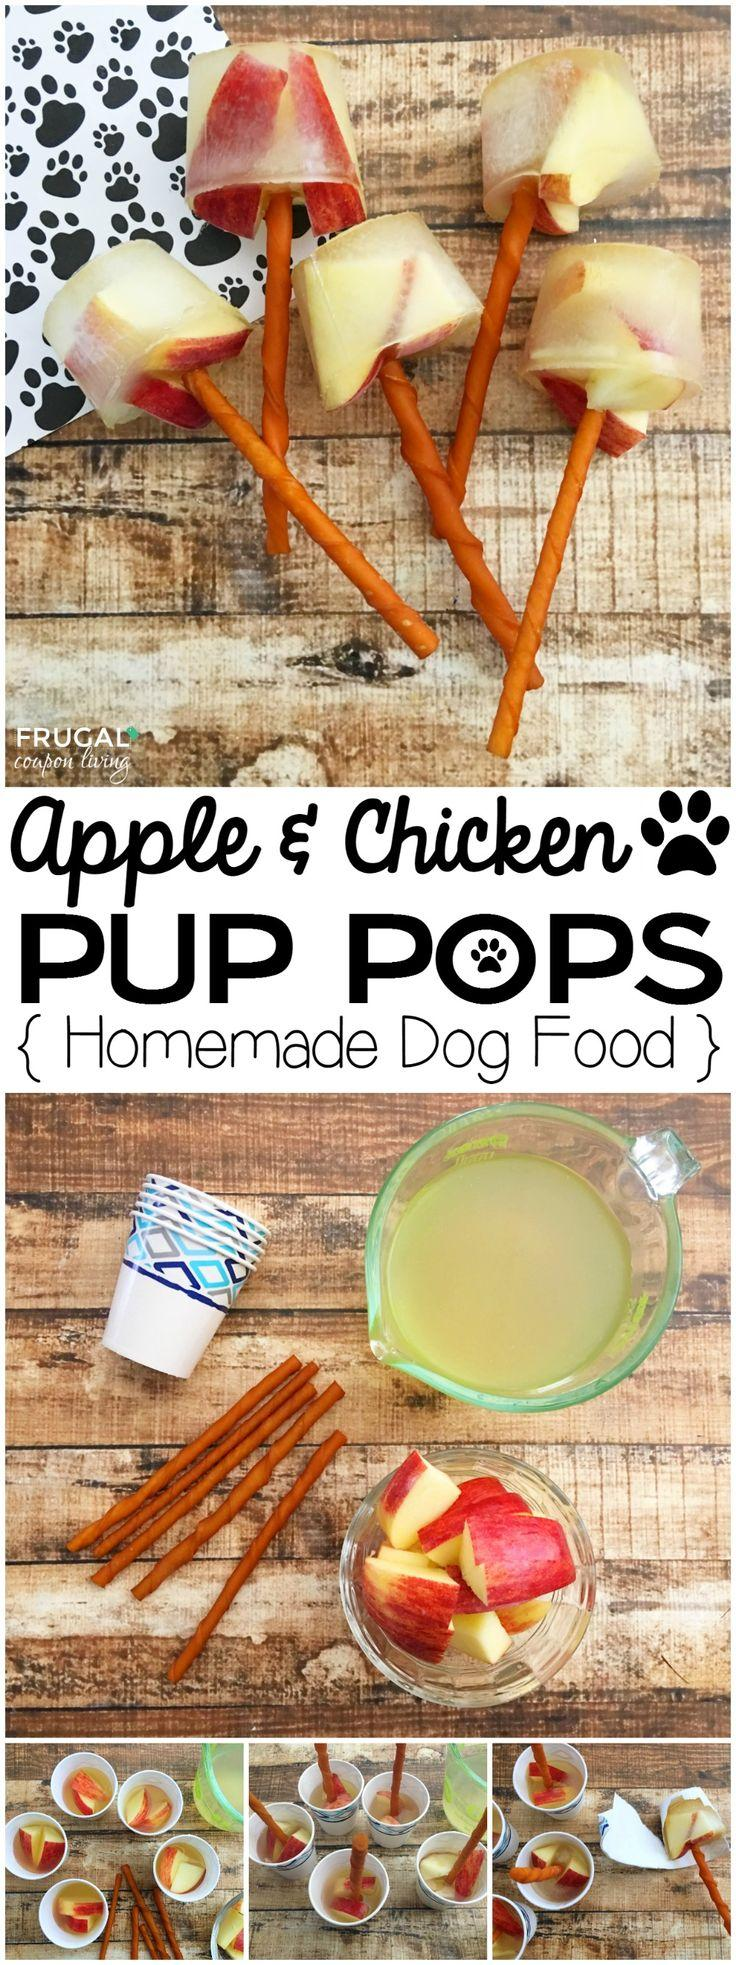 Свадьба - Apple & Chicken Pup Pops